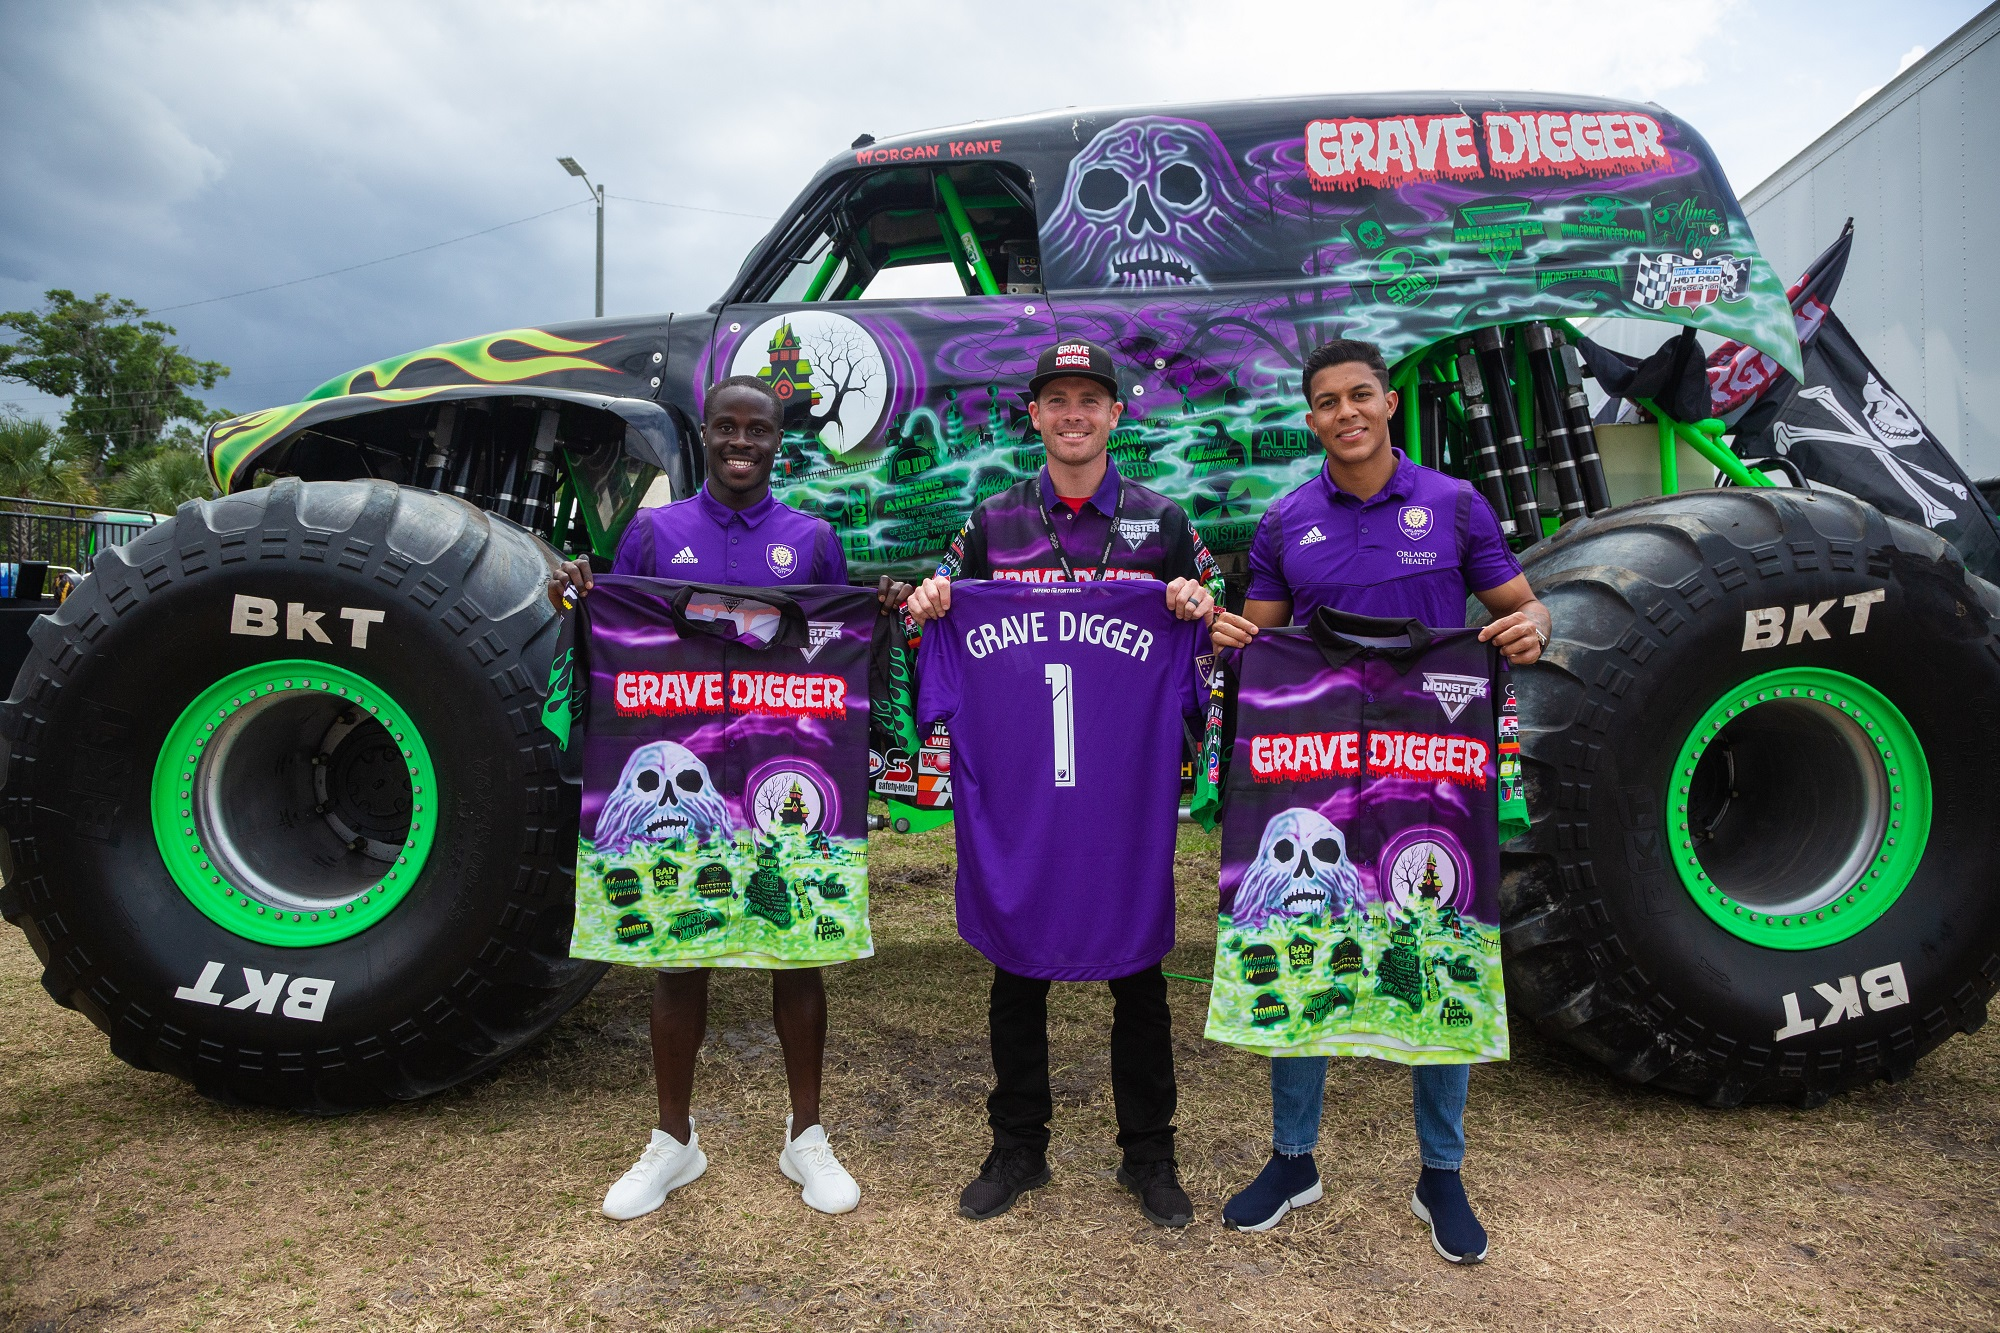 Benji Michel, Santiago Patino, Morgan Kane, Monster Jam World Finals Gravedigger